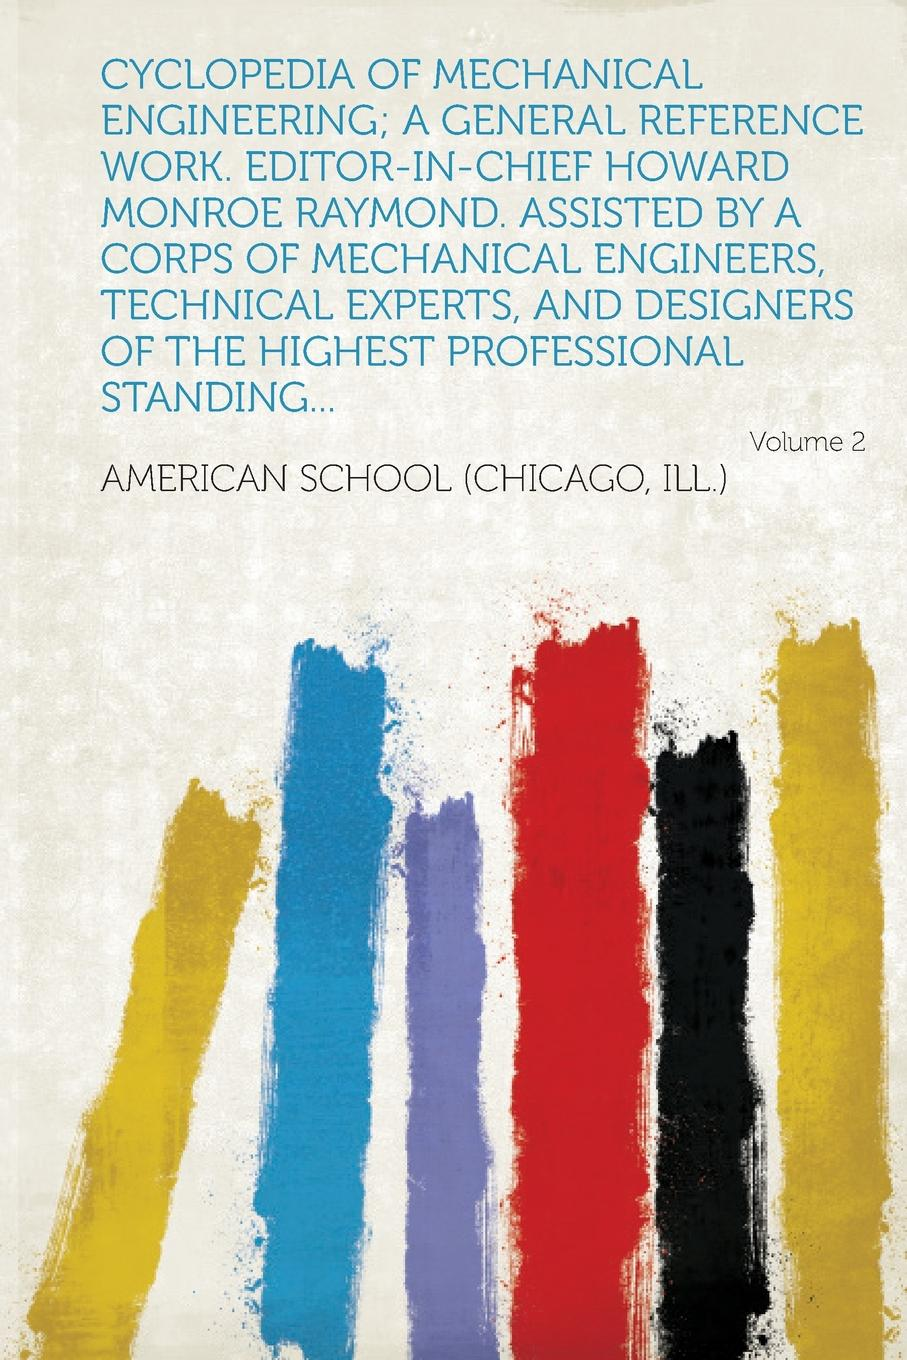 Cyclopedia of Mechanical Engineering; A General Reference Work. Editor-In-Chief Howard Monroe Raymond. Assisted by a Corps of Mechanical Engineers, Te